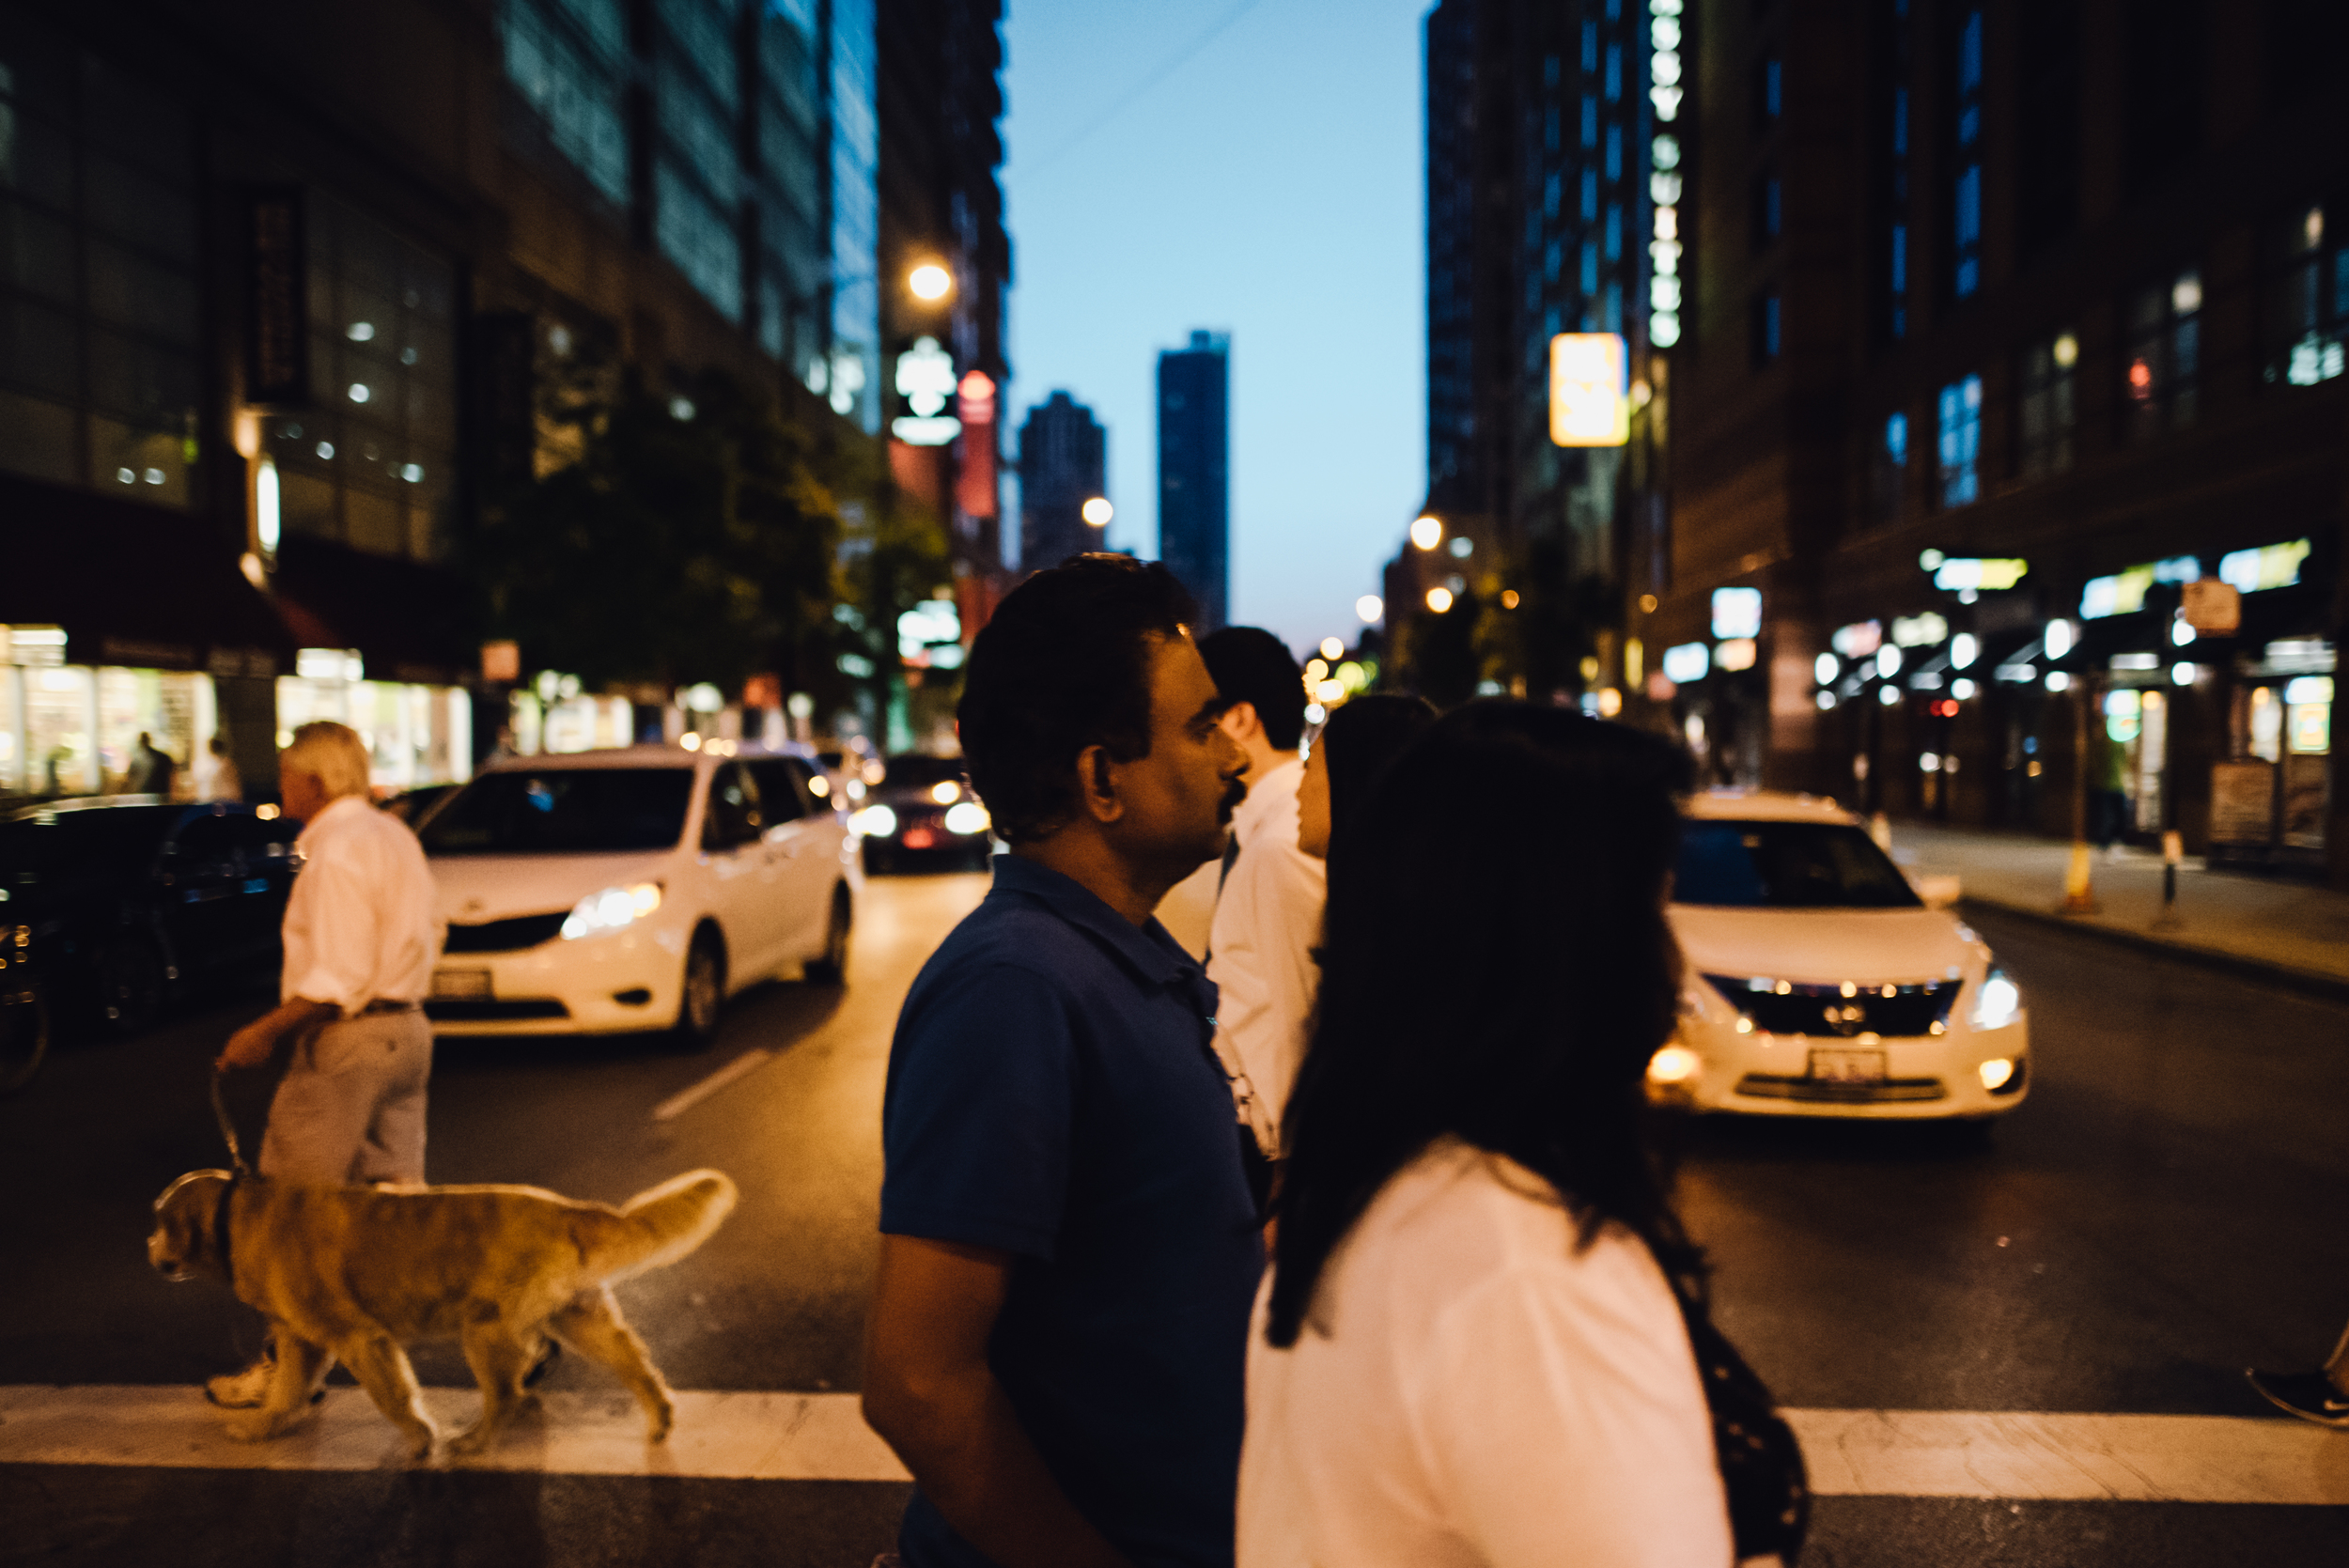 Main and Simple Photography_2016_Engagement_Chicago_J+S-433.jpg